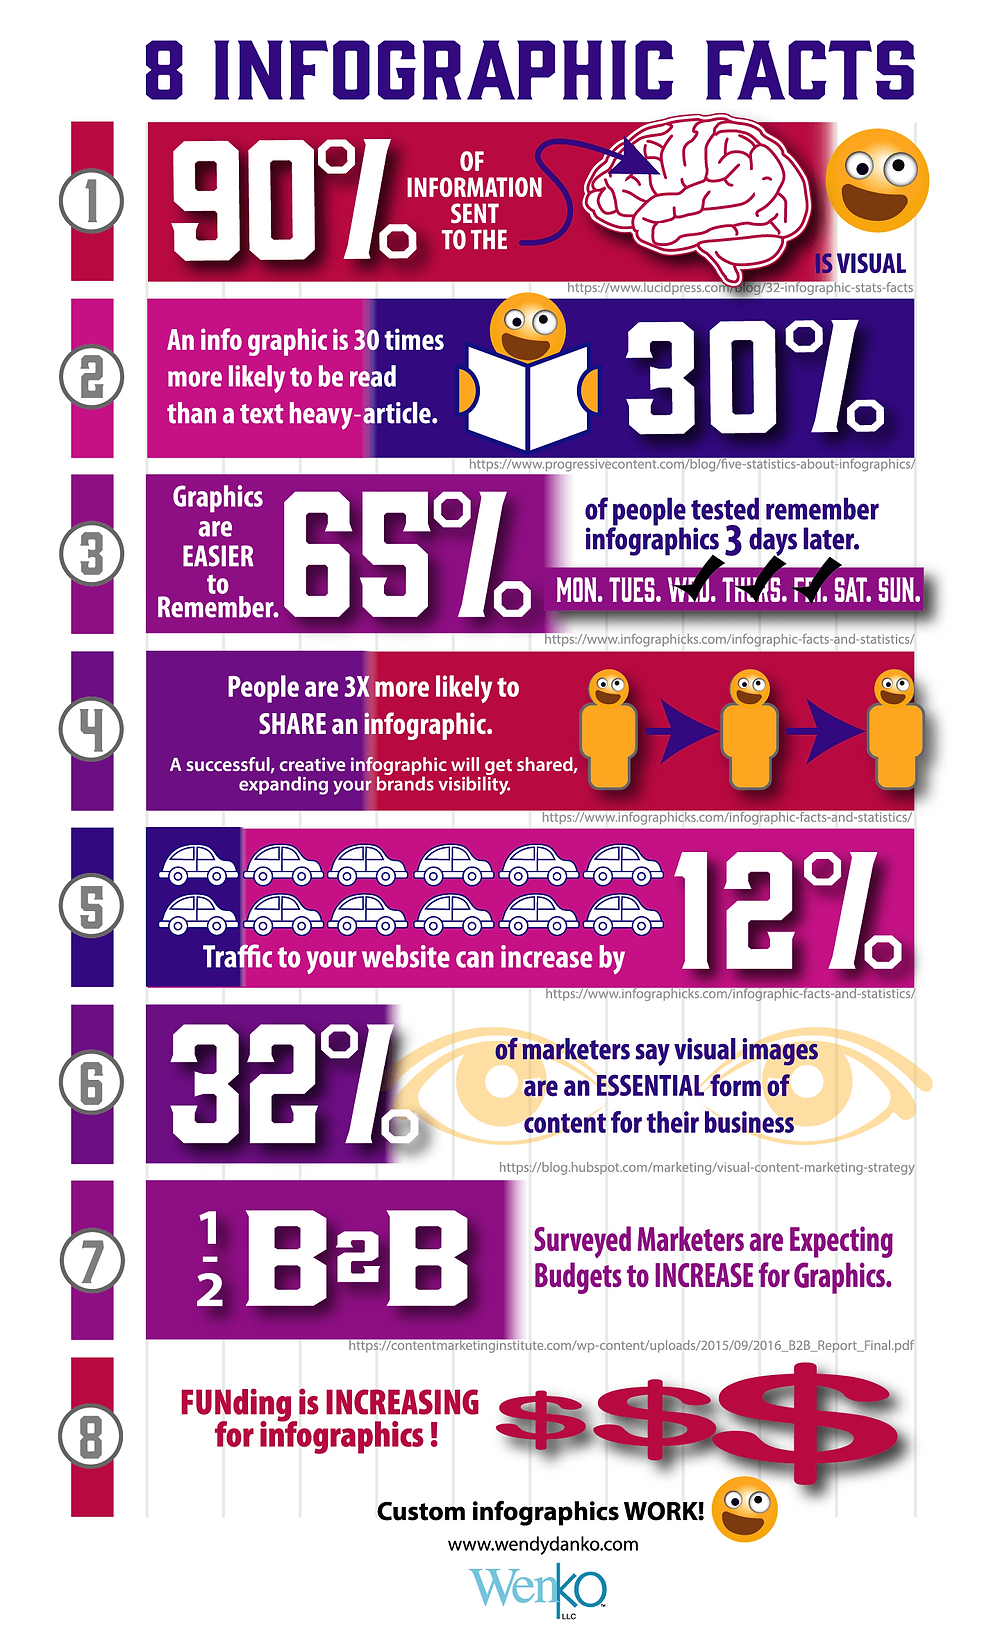 8 Infographic Facts